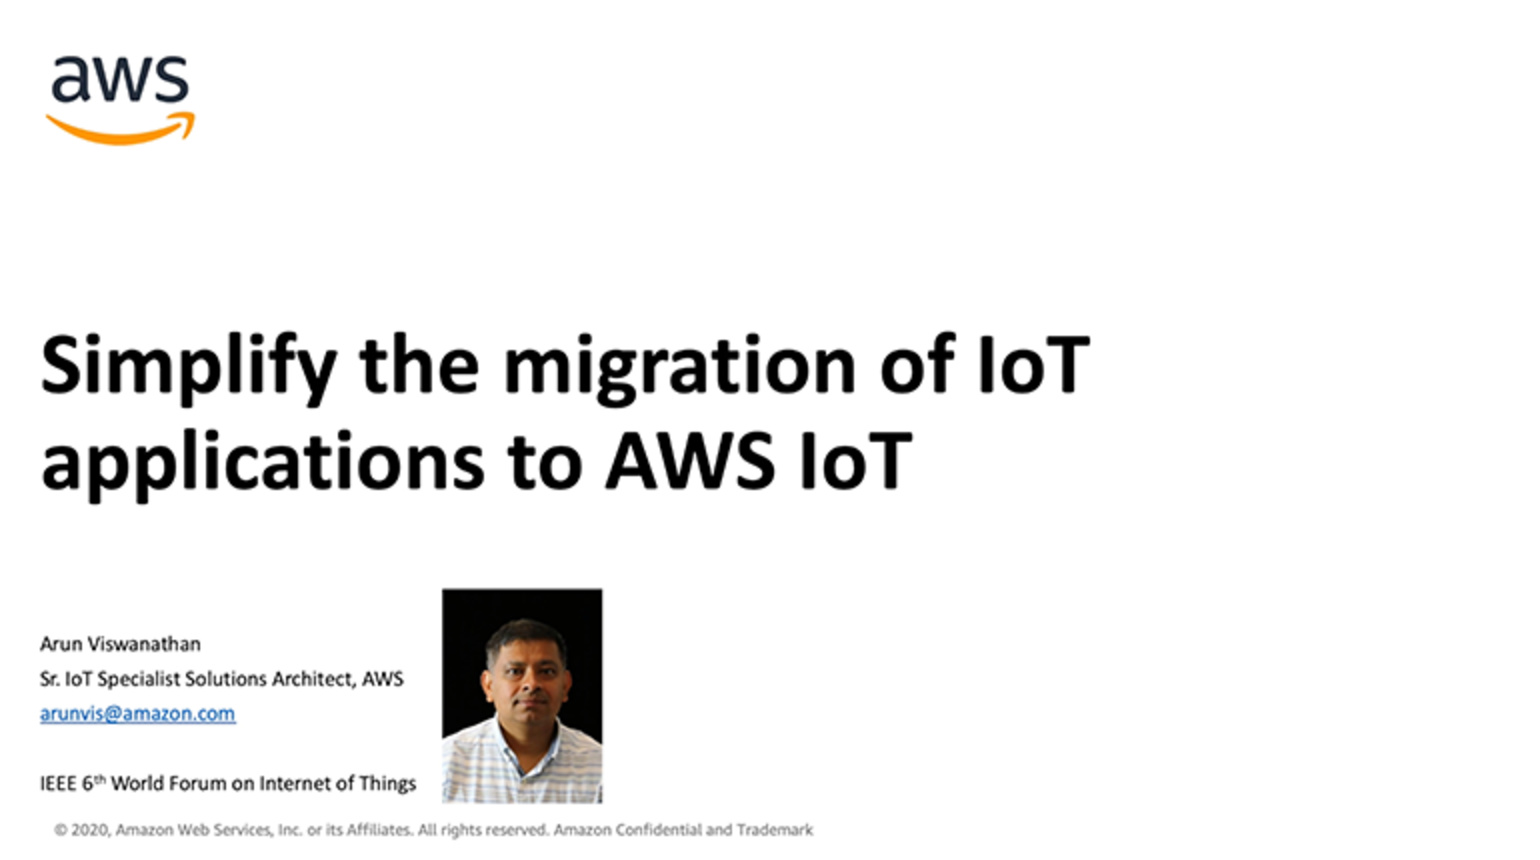 Simplify the Migration of IoT Applications to AWS IoT presented by Arun Viswanathan, Specialist IoT Solutions Architect at Amazon Web Services